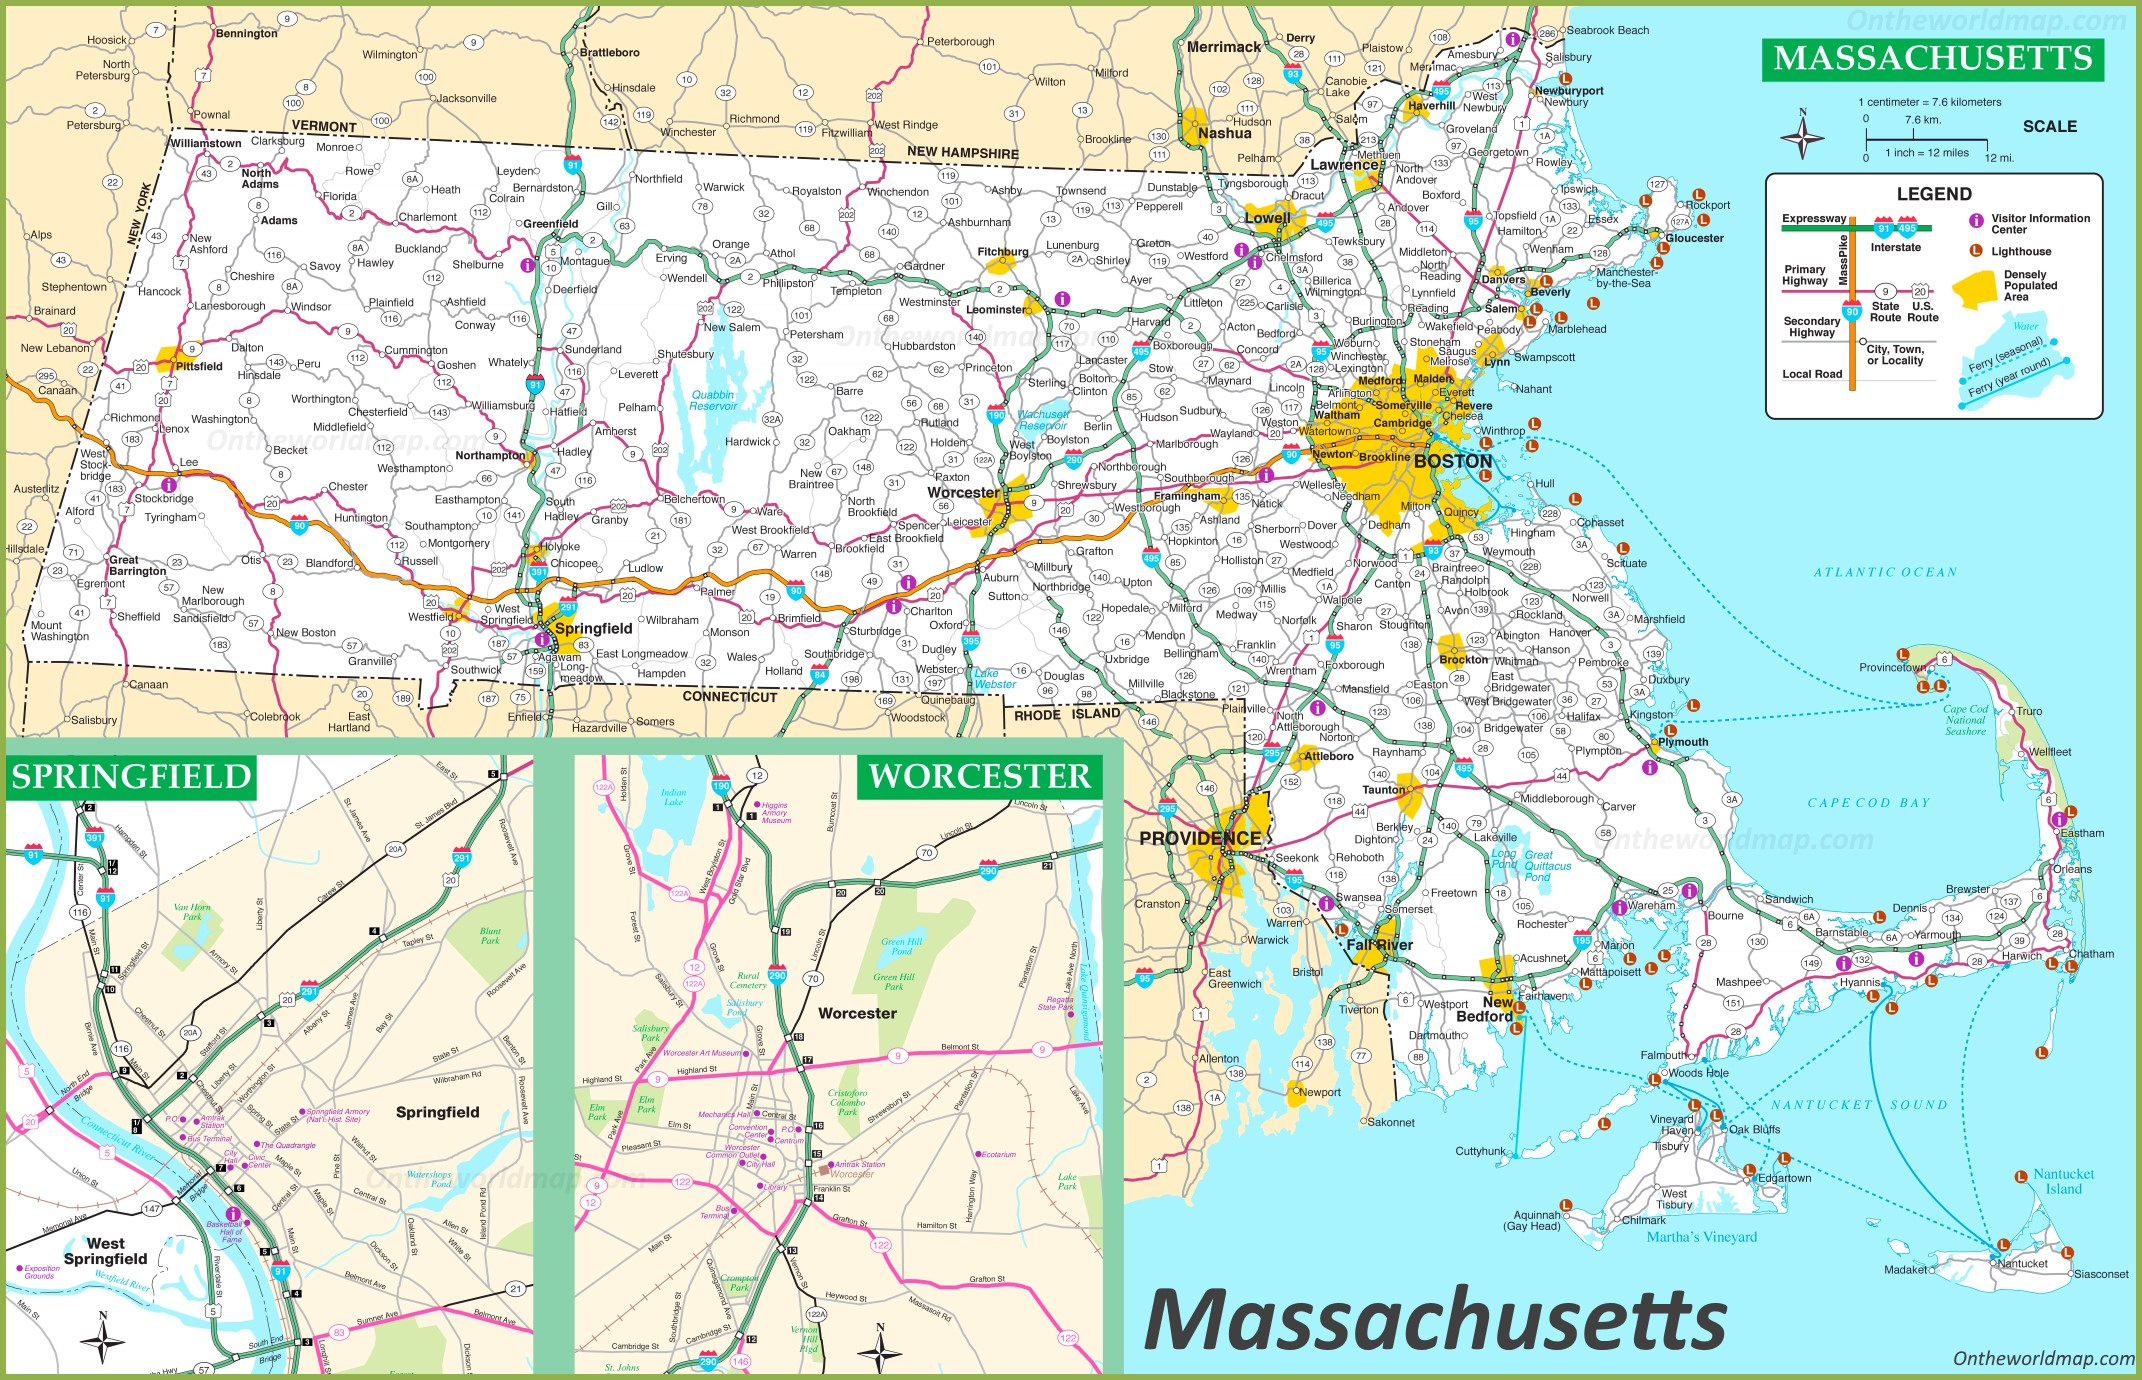 Massachusetts State Maps USA Maps Of Massachusetts MA - Map of massachusetts